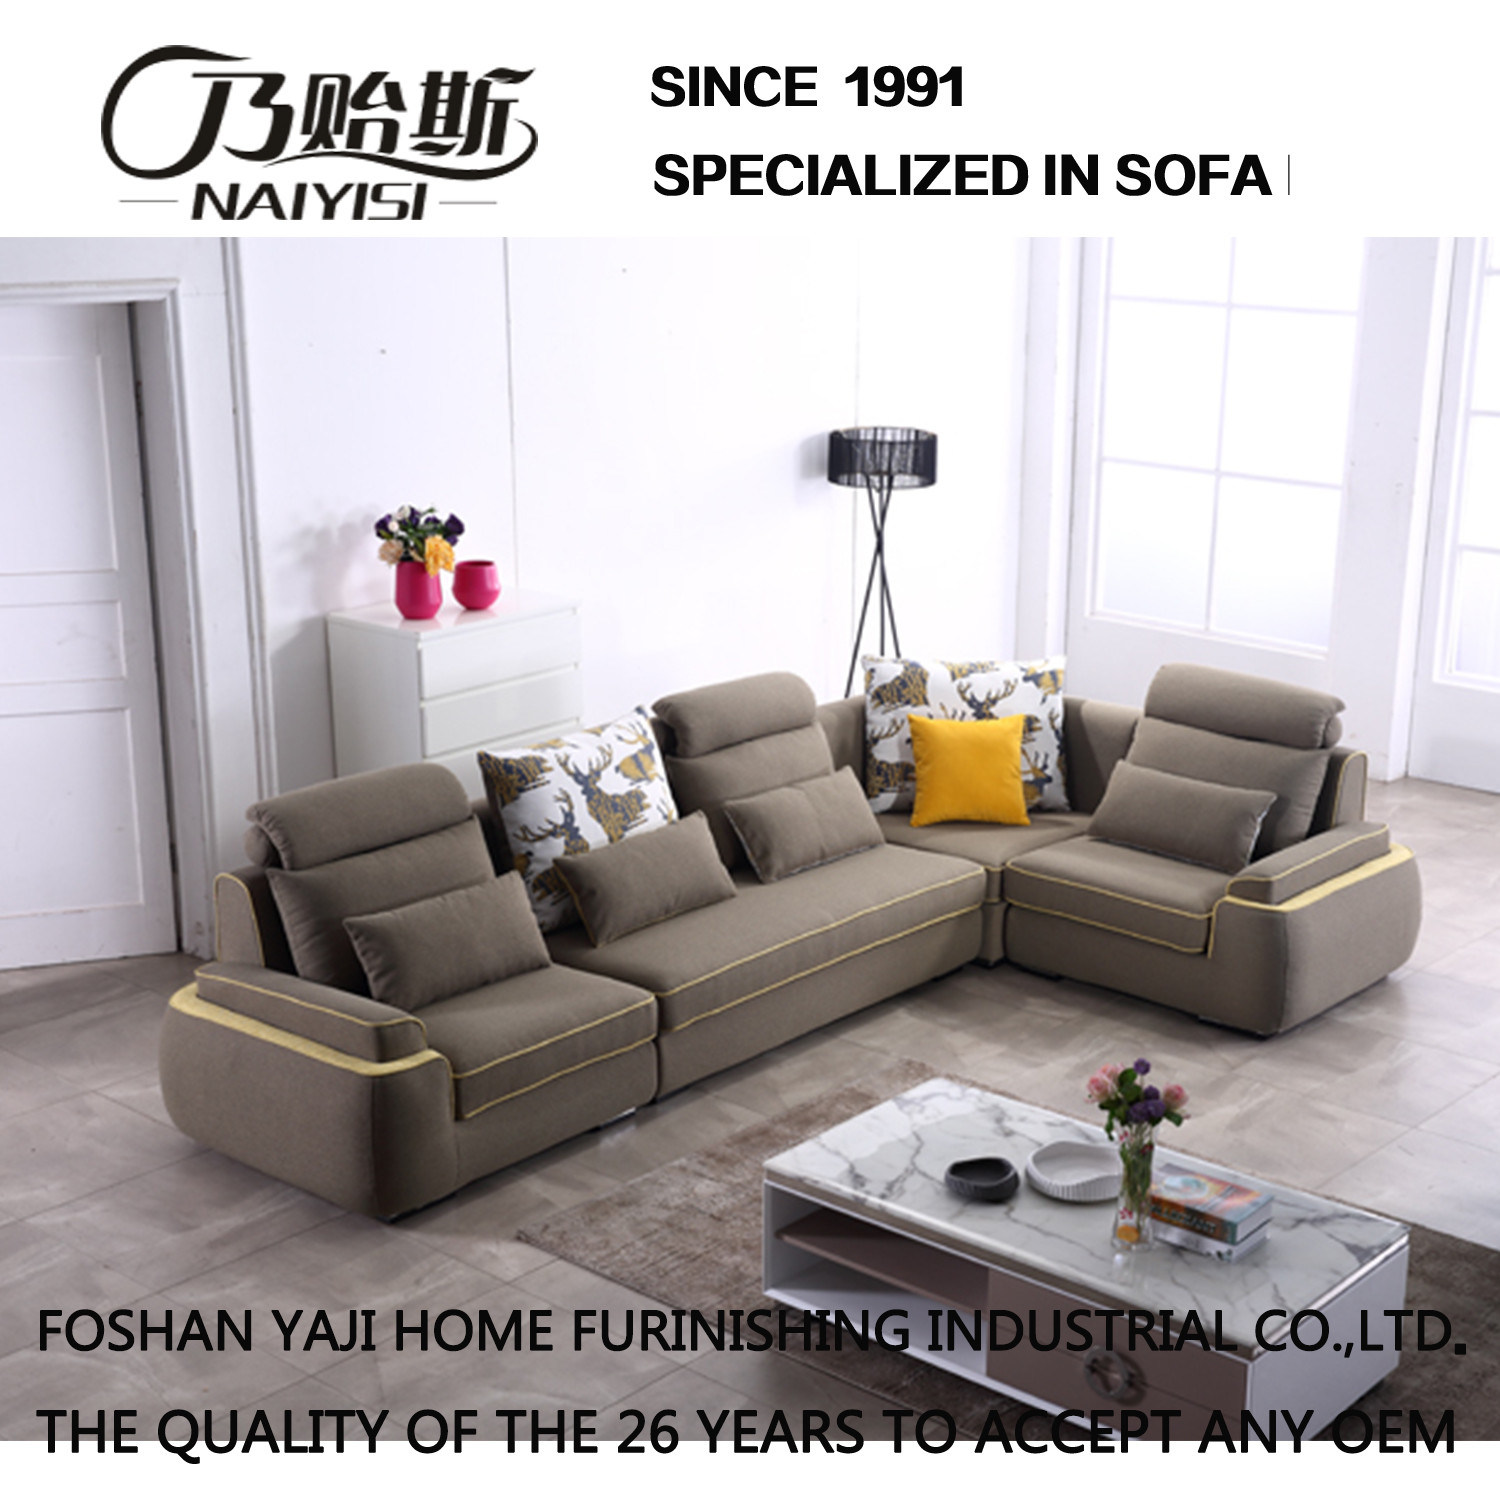 Living Room Bed China Furniture Sofa Bed Supplier Foshan Yaji Home Furnishing